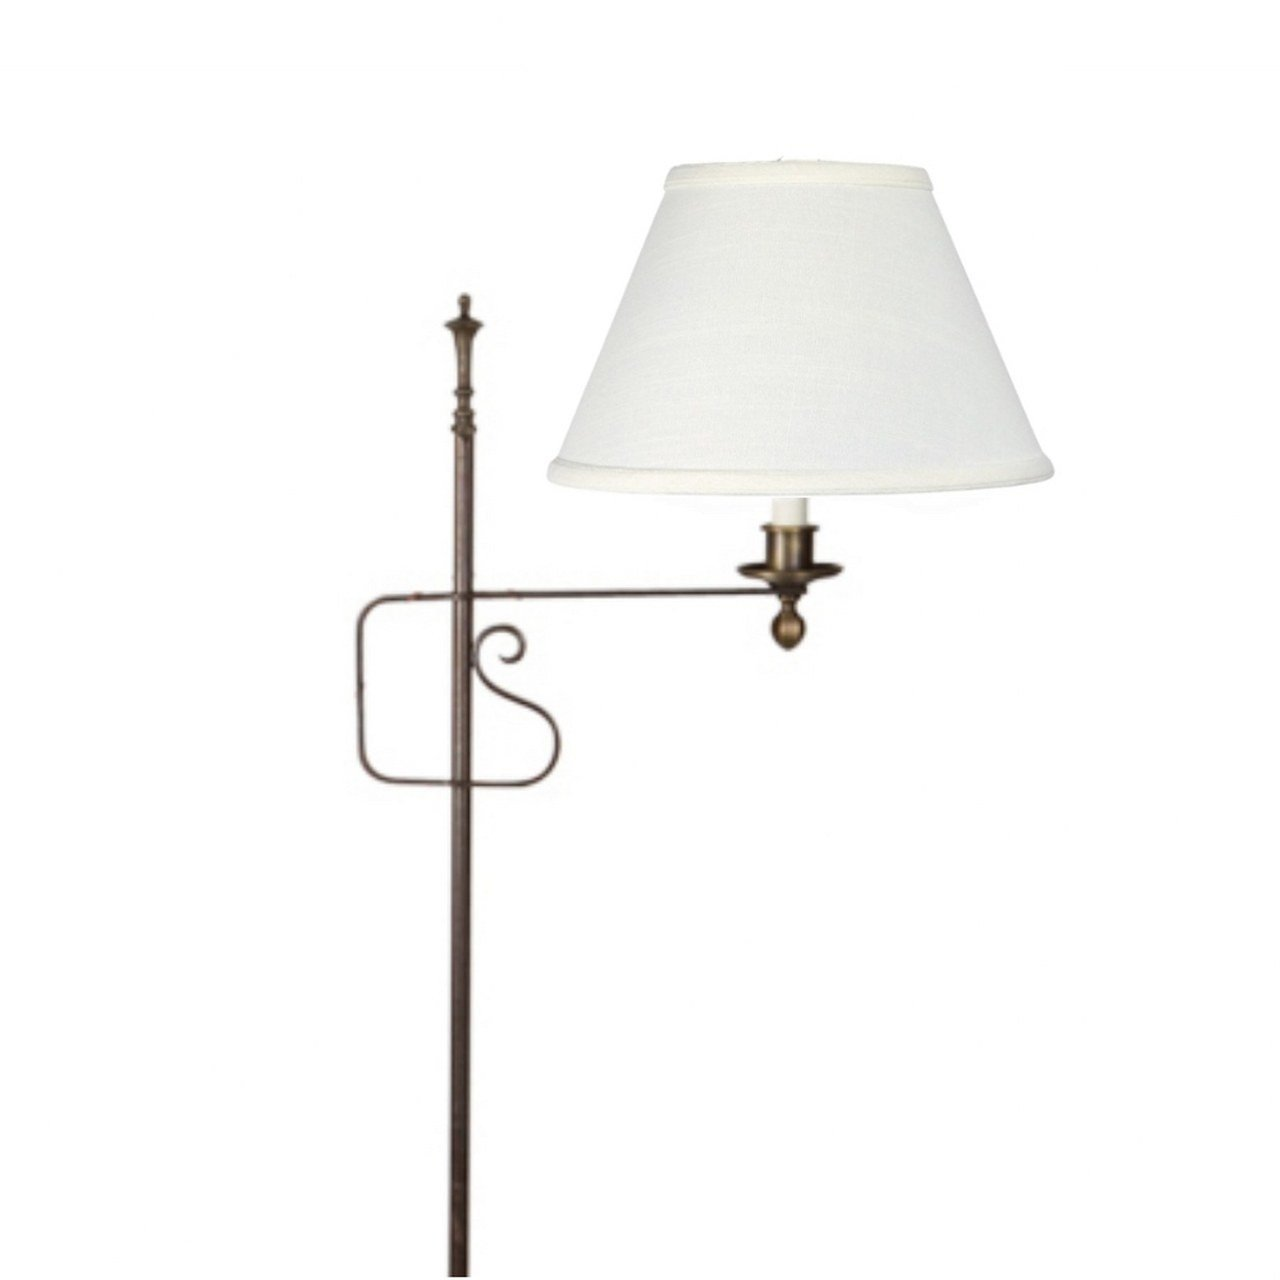 Off White Linen 8 Inch Floor Lamp Shade Replacement Walmart Com